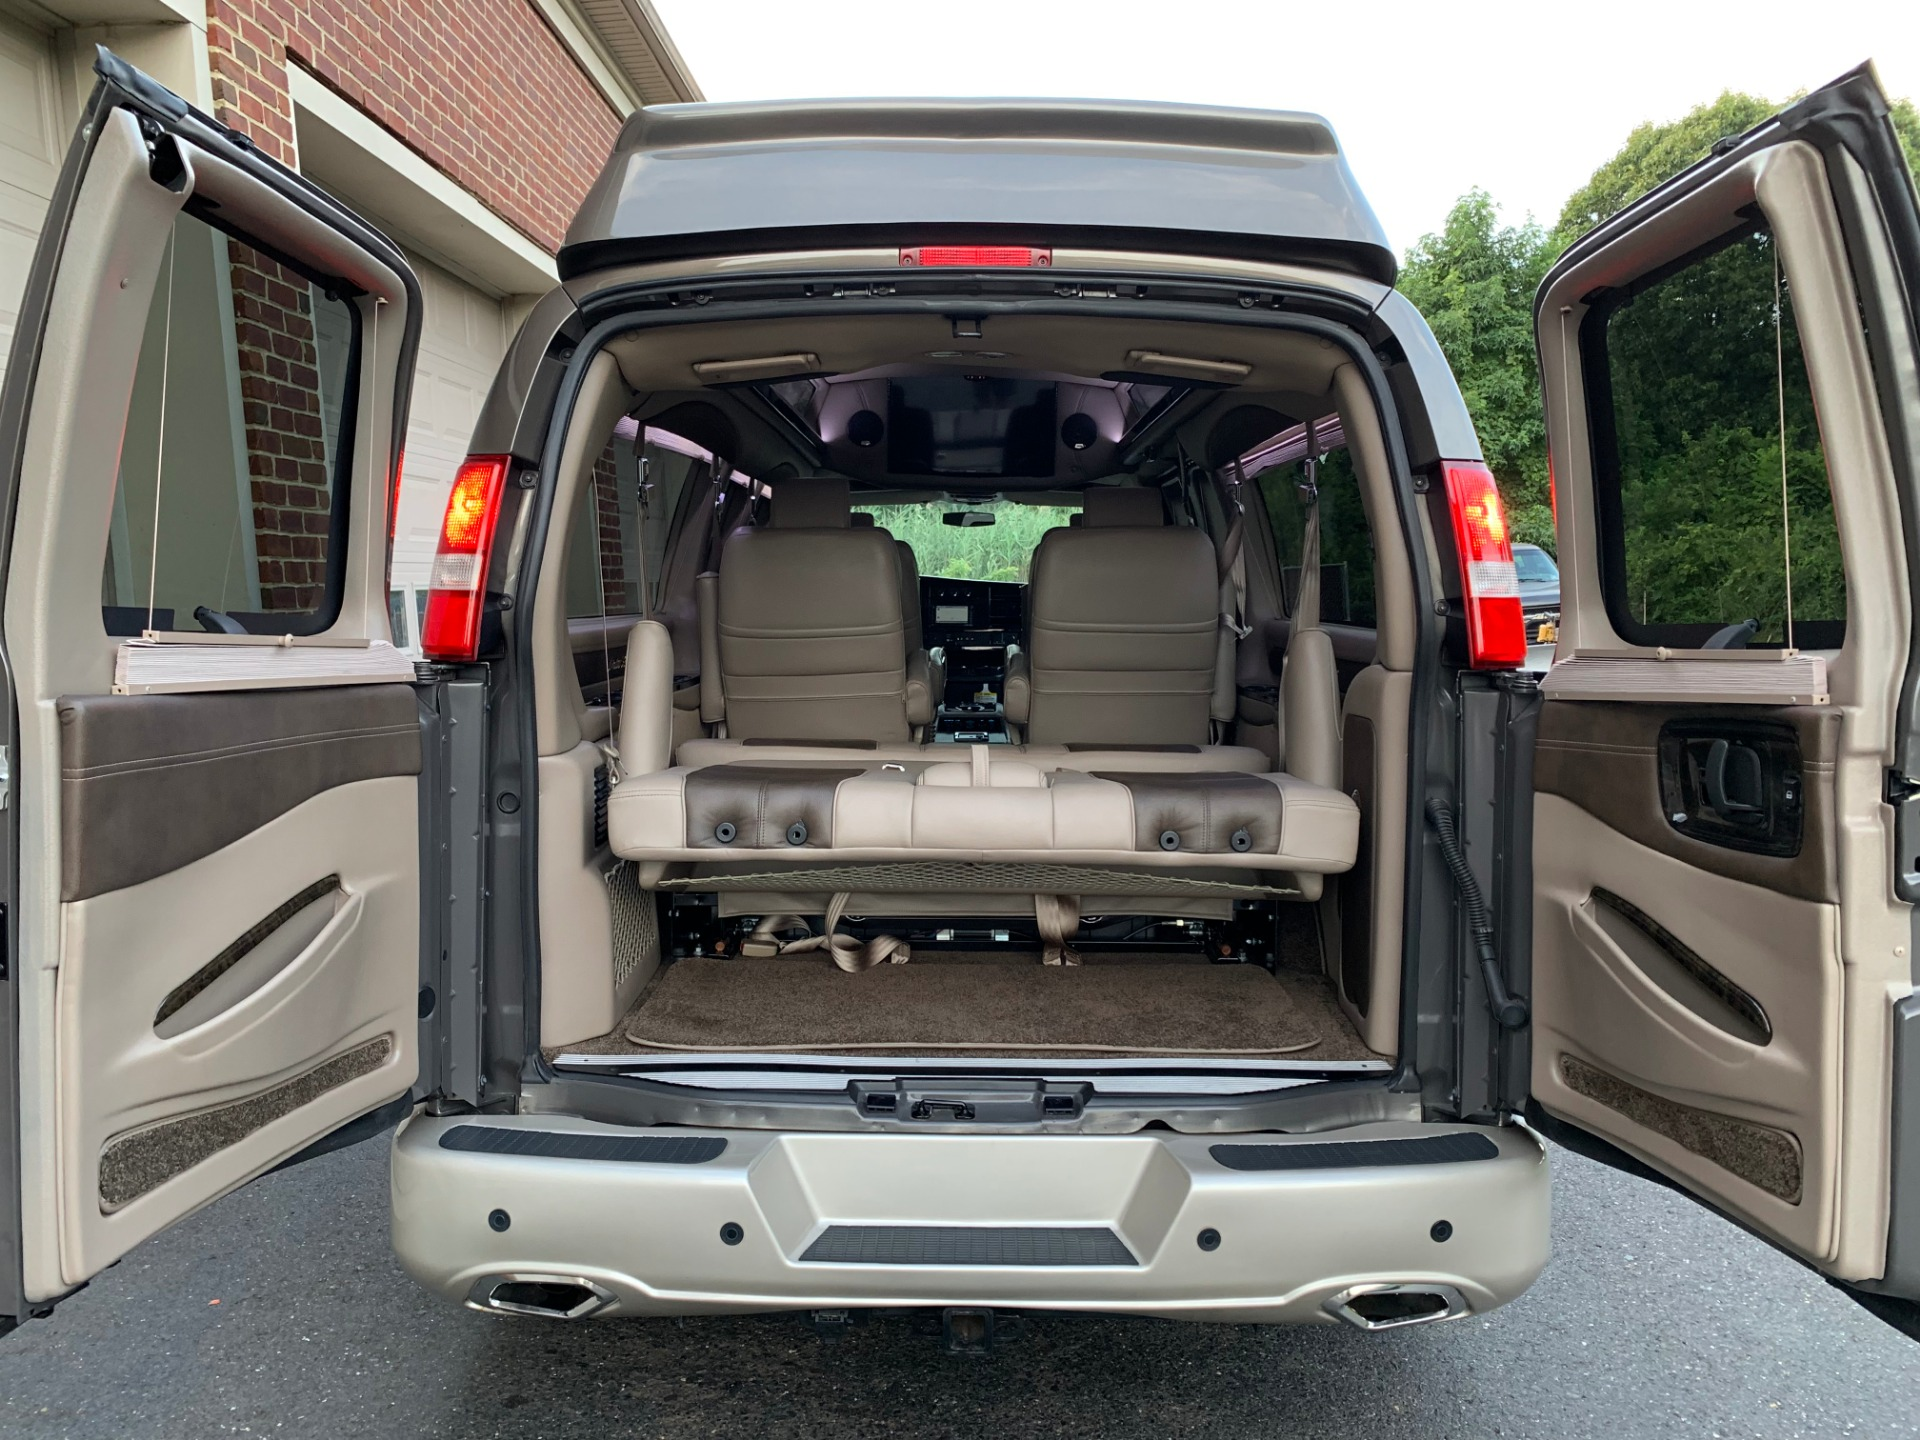 Used-2015-Chevrolet-Express-Explorer-2500-Limited-Se-High-Top-Conversion